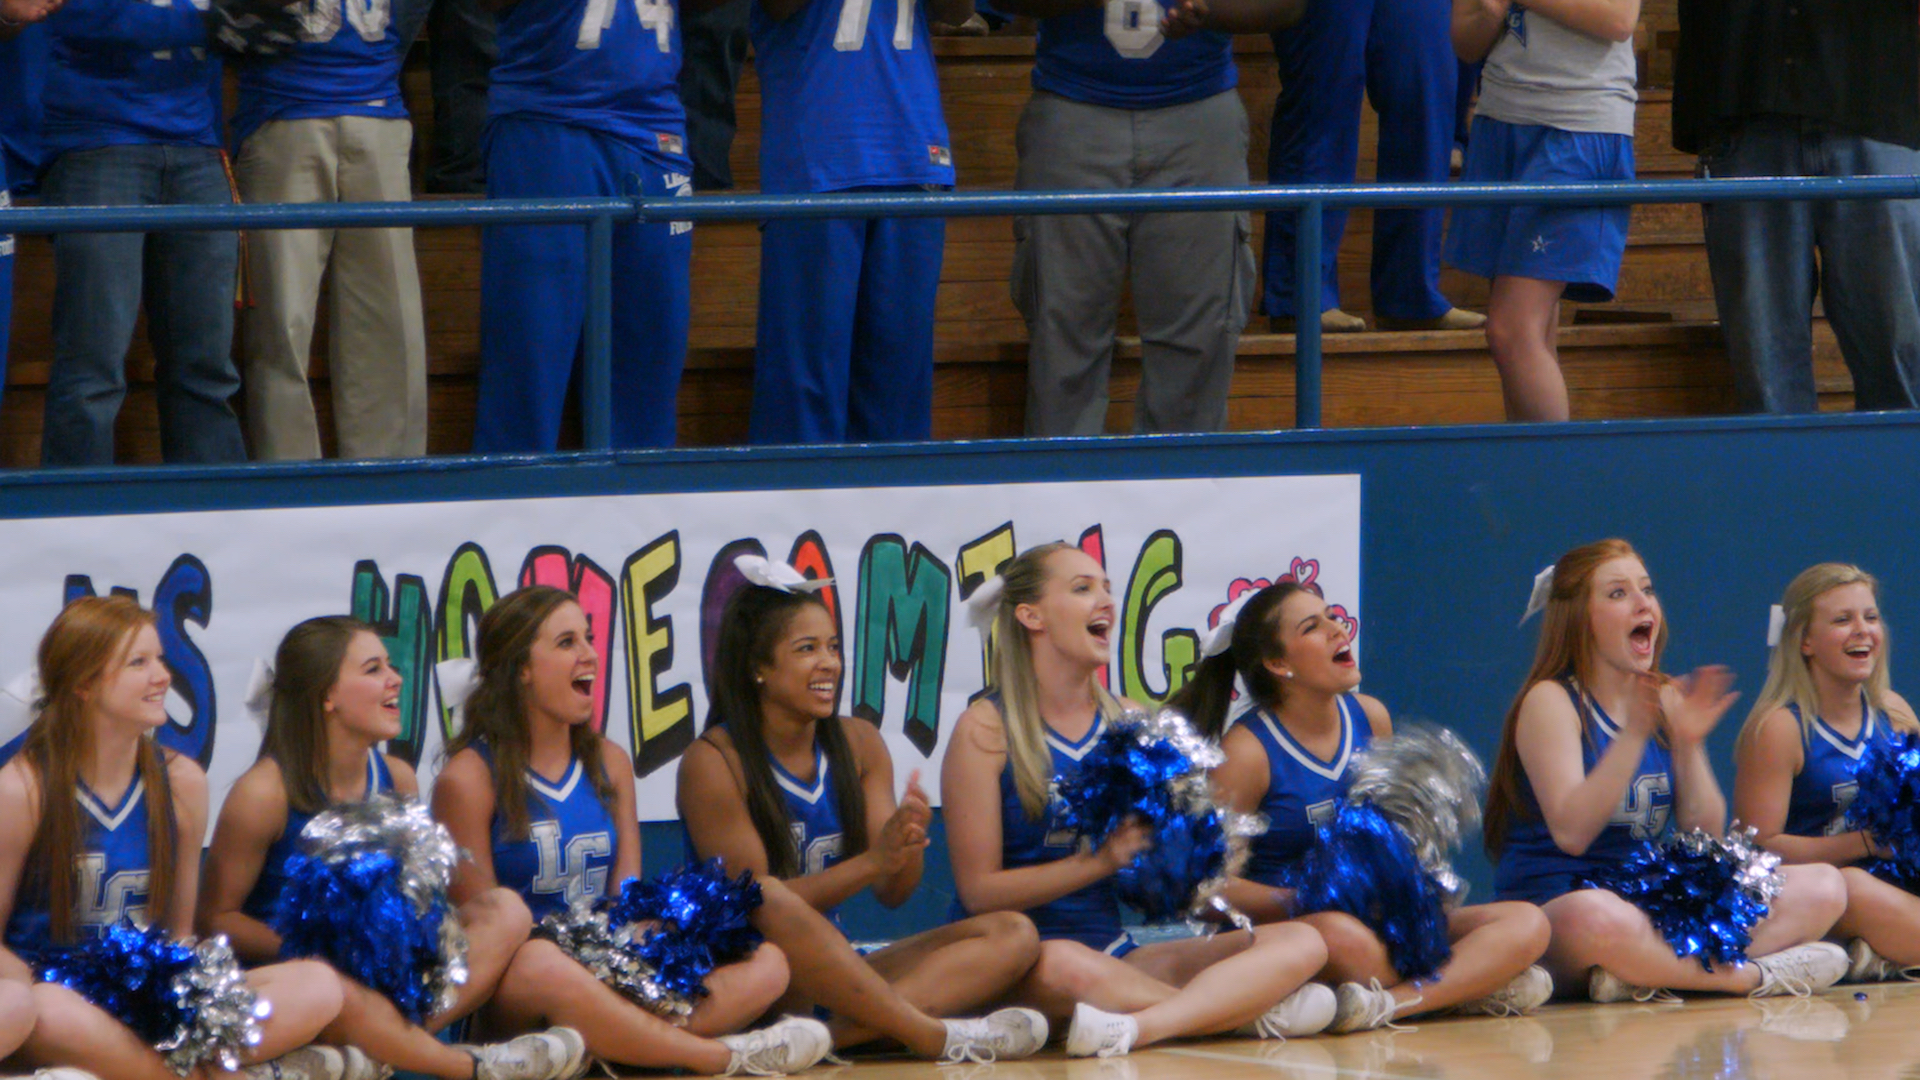 Holden's sister and other cheerleaders .jpg